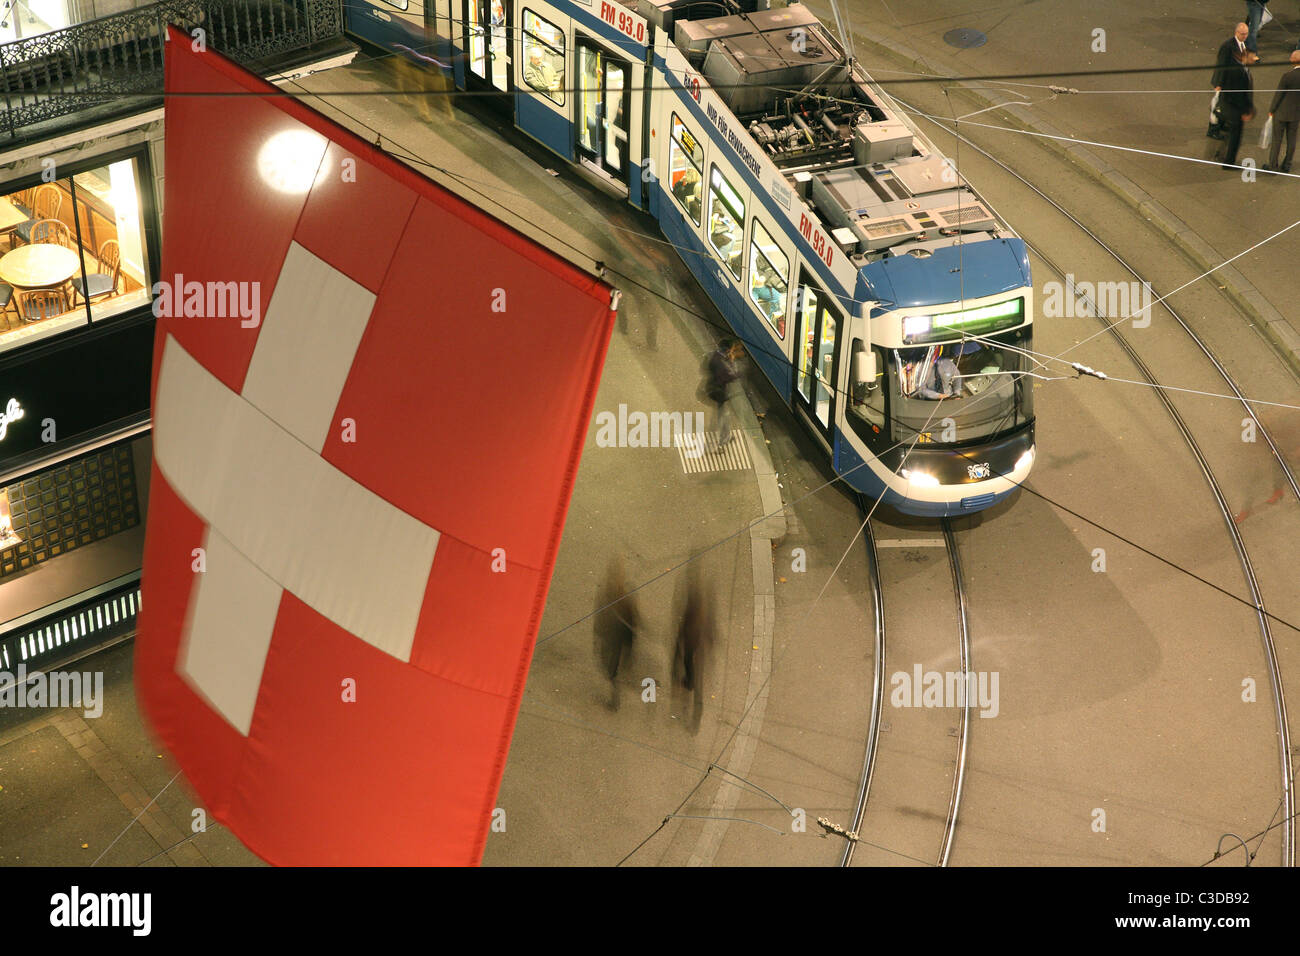 A tramway in the Bahnhofstrasse, Zurich, Switzerland - Stock Image